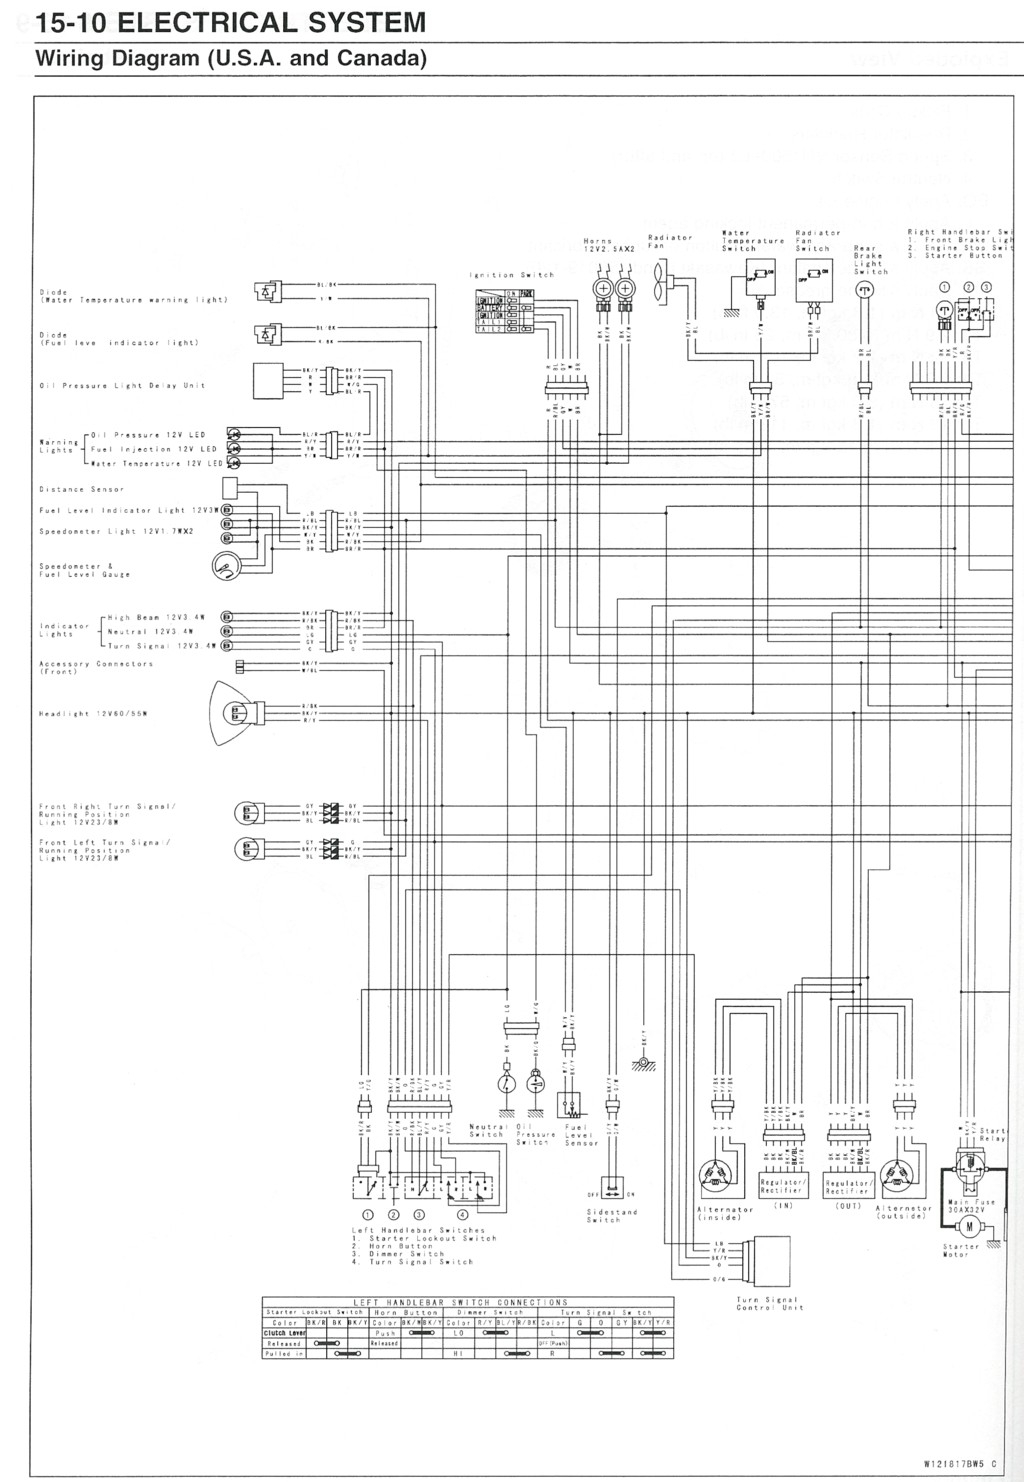 nomad_wiring_diagram_carbed_p1 vulcan wiring diagrams gadget's fixit page  at crackthecode.co